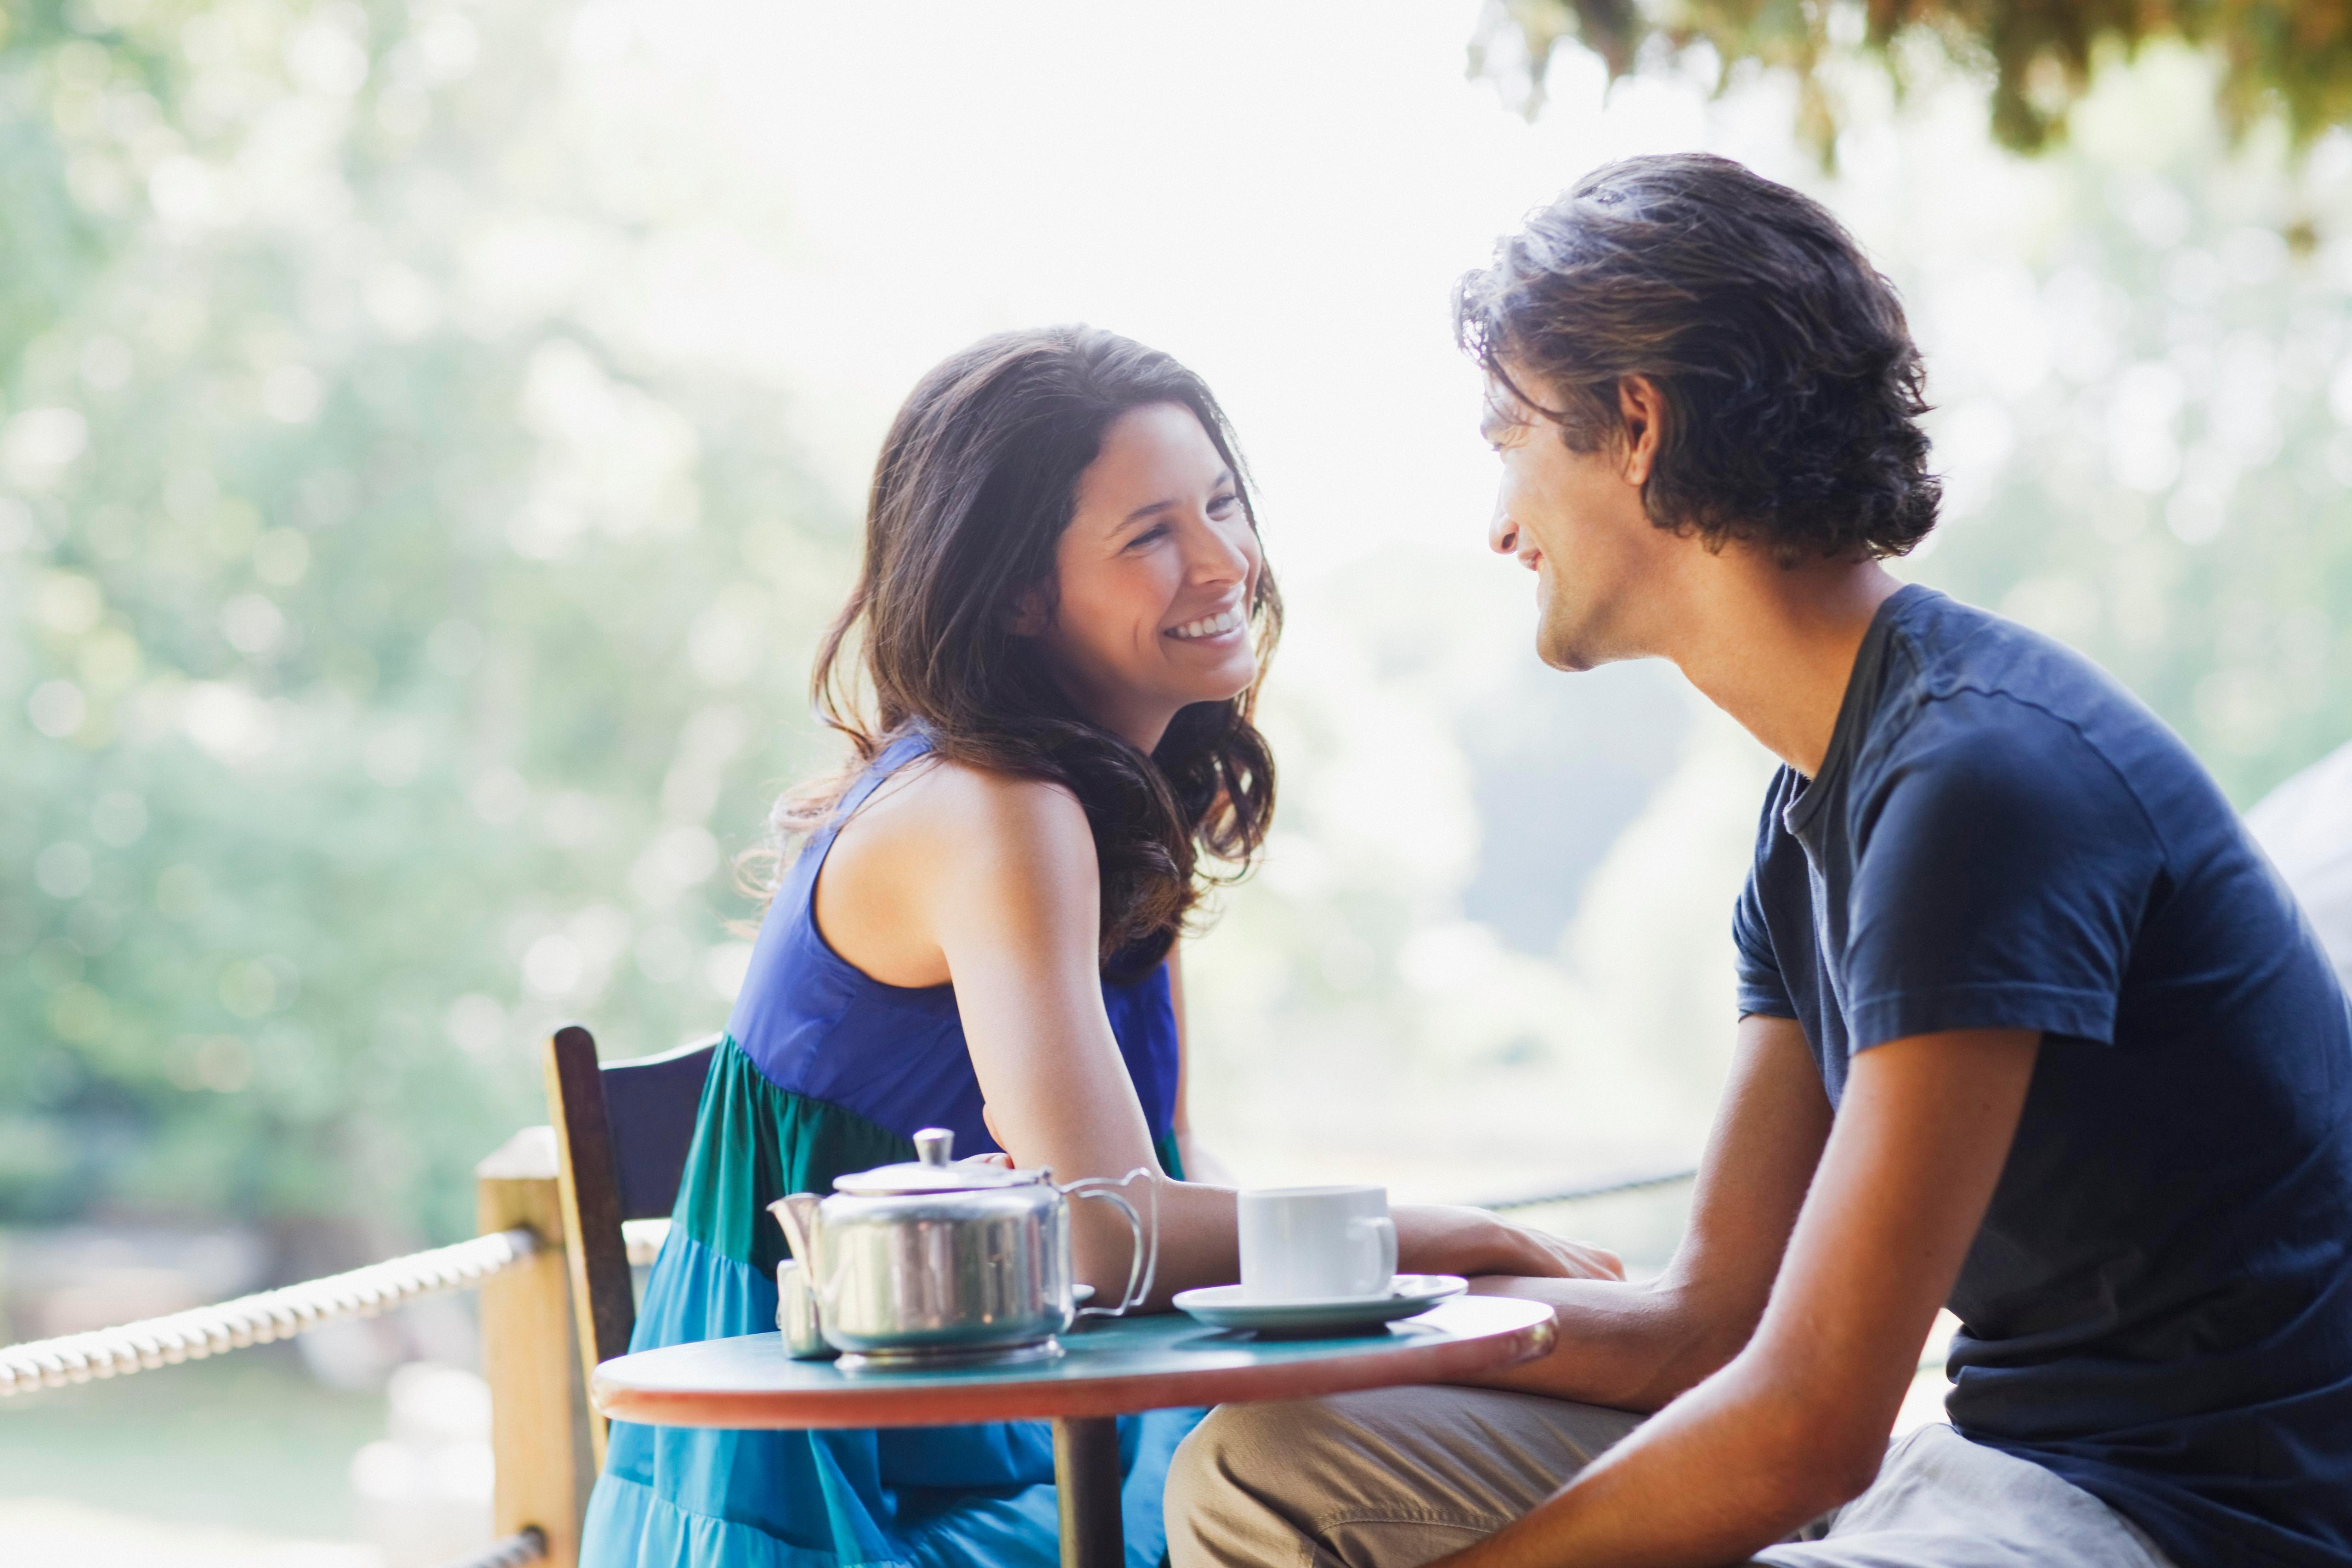 This expert thinks you SHOULD talk about your ex on a first date… but what do you think?